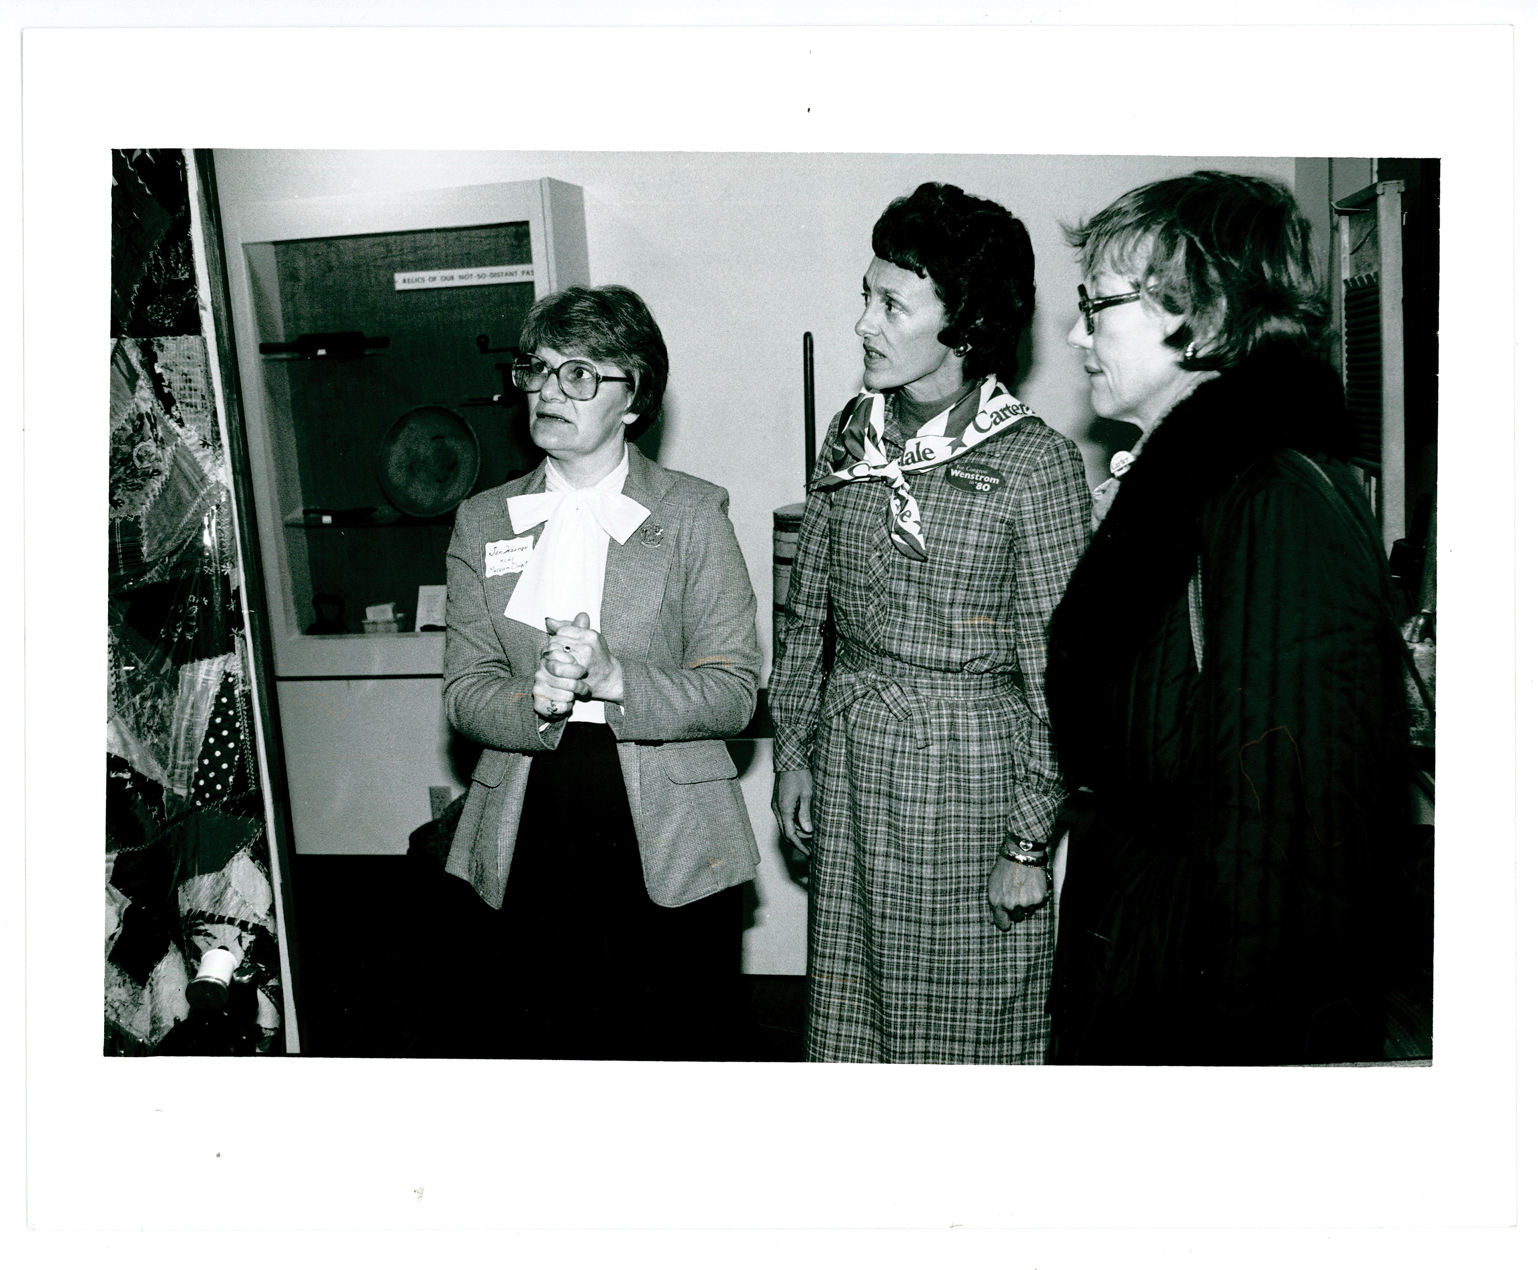 Joan Mondale's visit to The Charles A. Weyerhaeuser Memorial Museum, October 1980. Joan is in the center. Jan Warner, executive director of the museum is on the left side of the picture. The woman on the right is unidentified. MCHS Collections #1981.3.2.